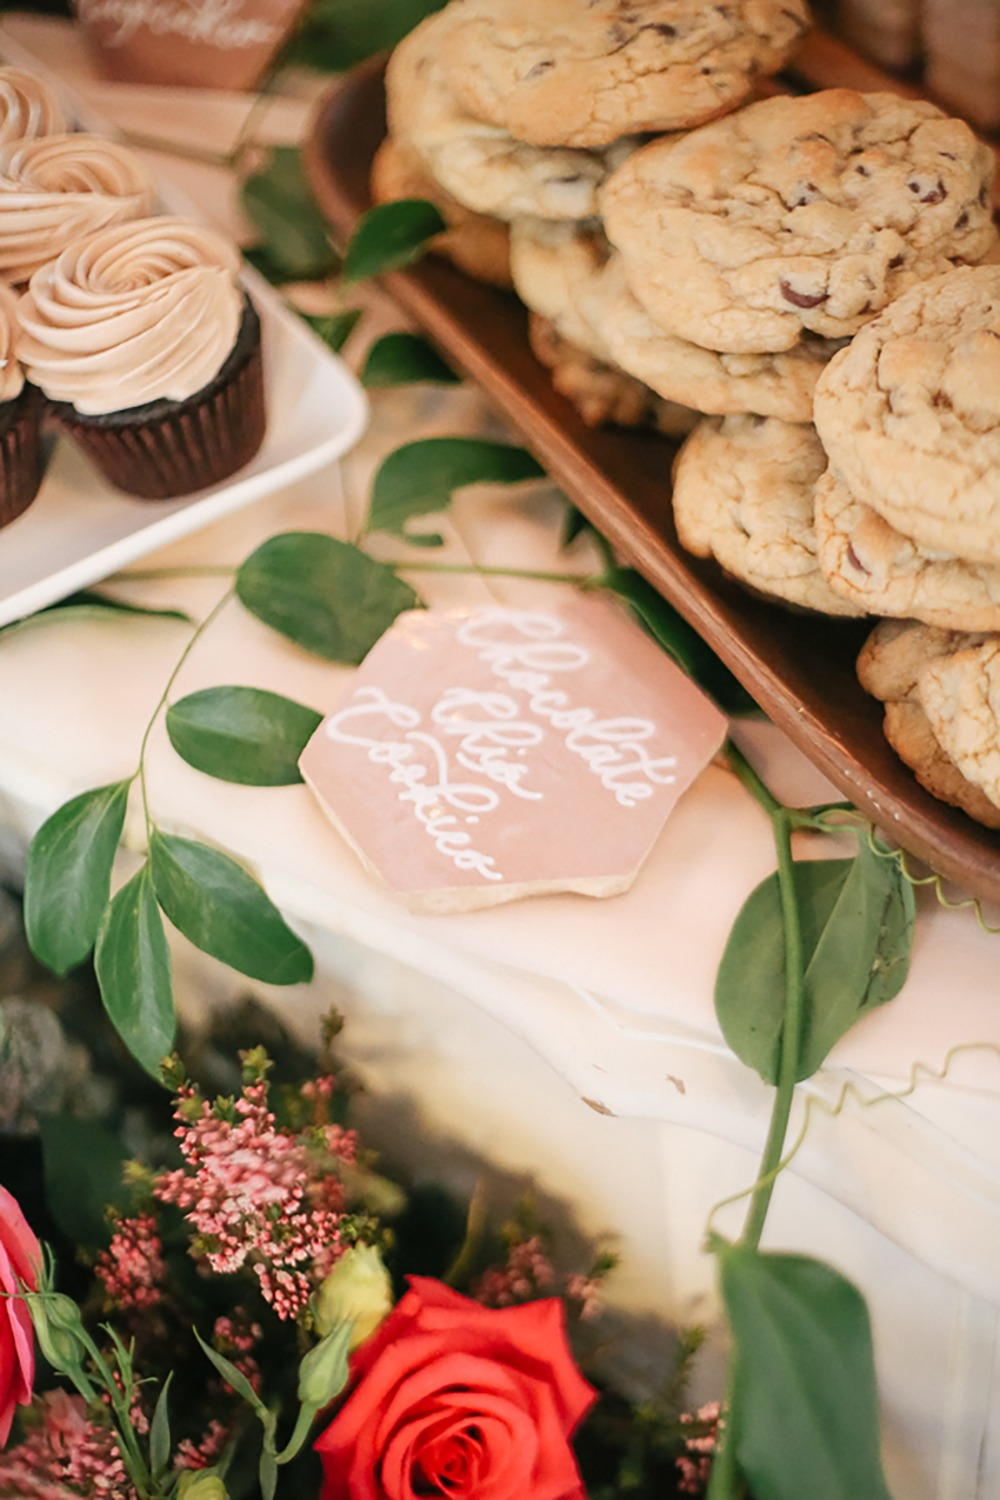 tile title cards for your dessert table